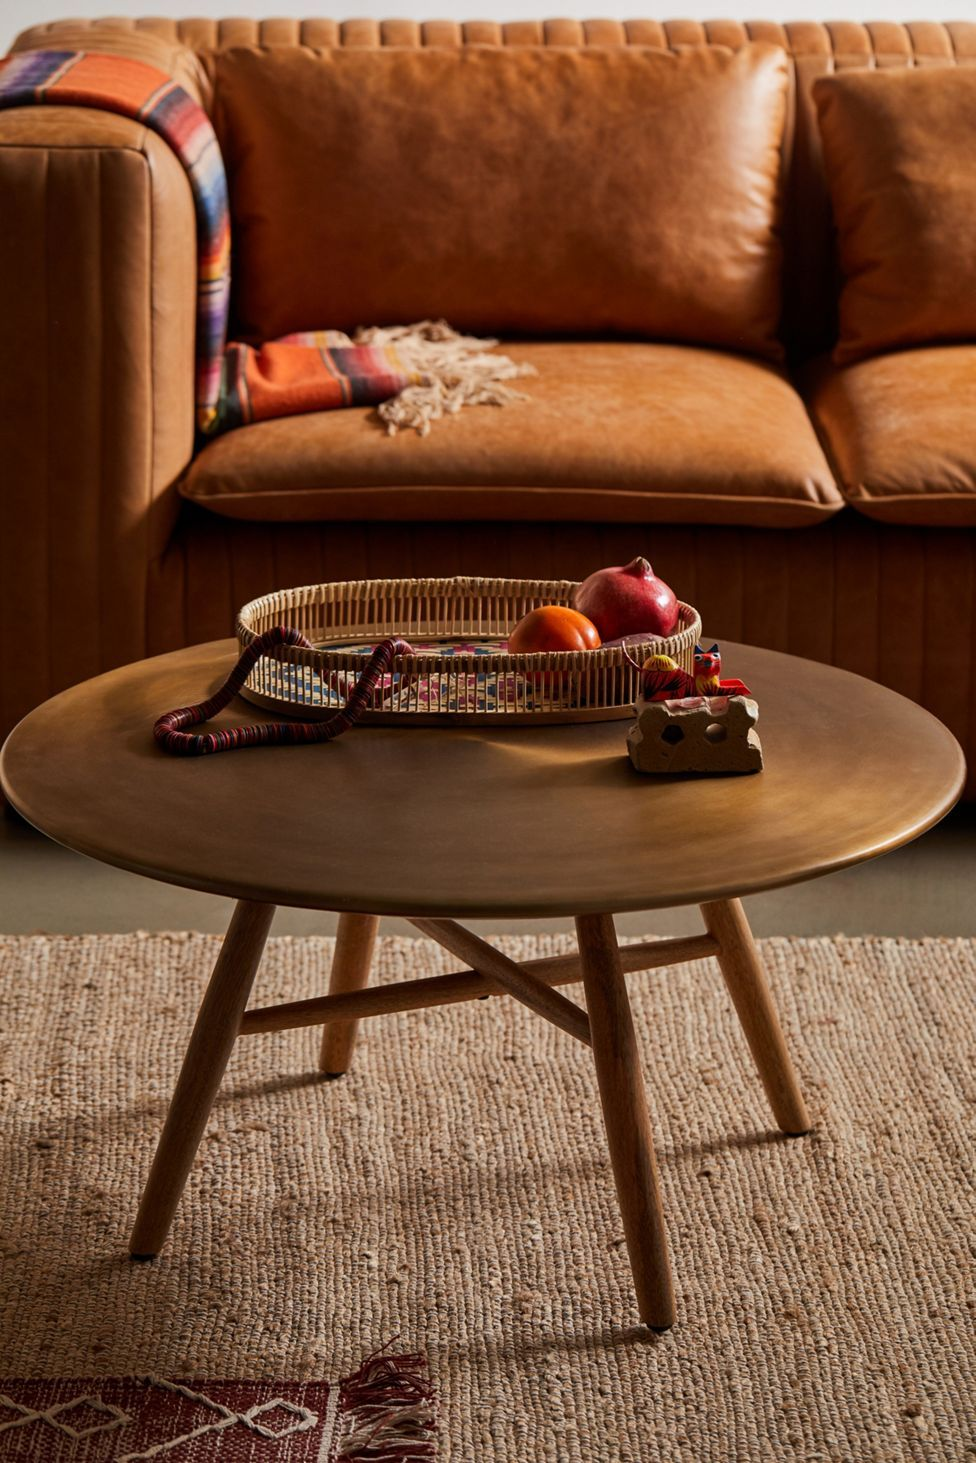 Pin By Melissa Elder On Front Room Coffee Table Urban Outfitters Coffee Table Coffee Table Wood [ 1463 x 976 Pixel ]